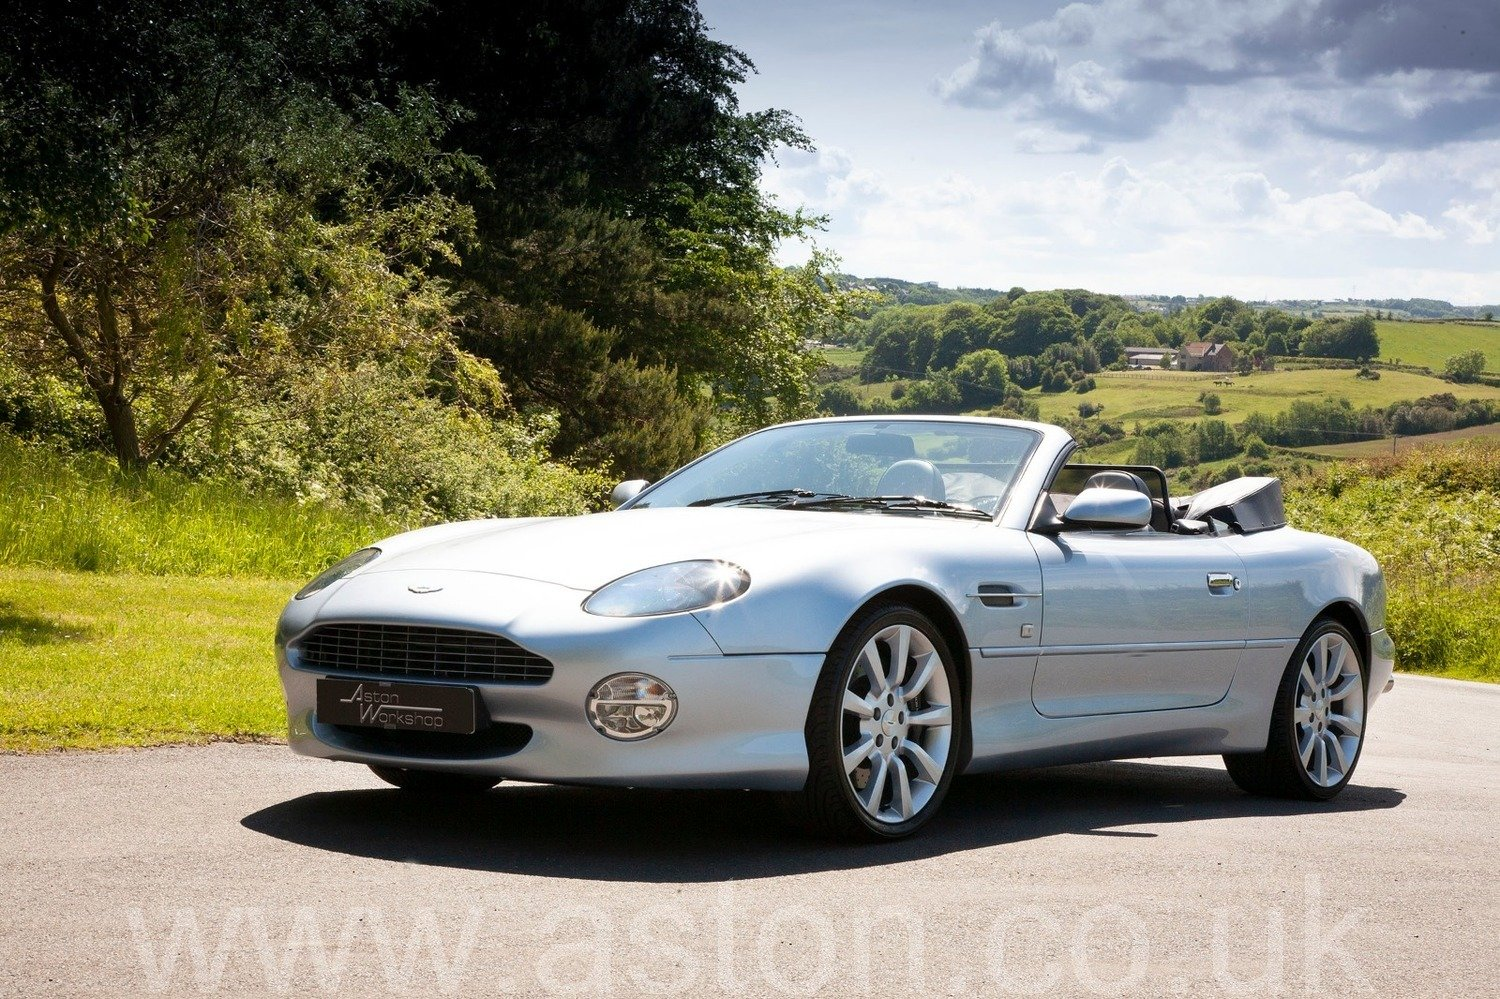 2003 2007 DB7 Vantage V12 Volante For Sale (picture 2 of 6)